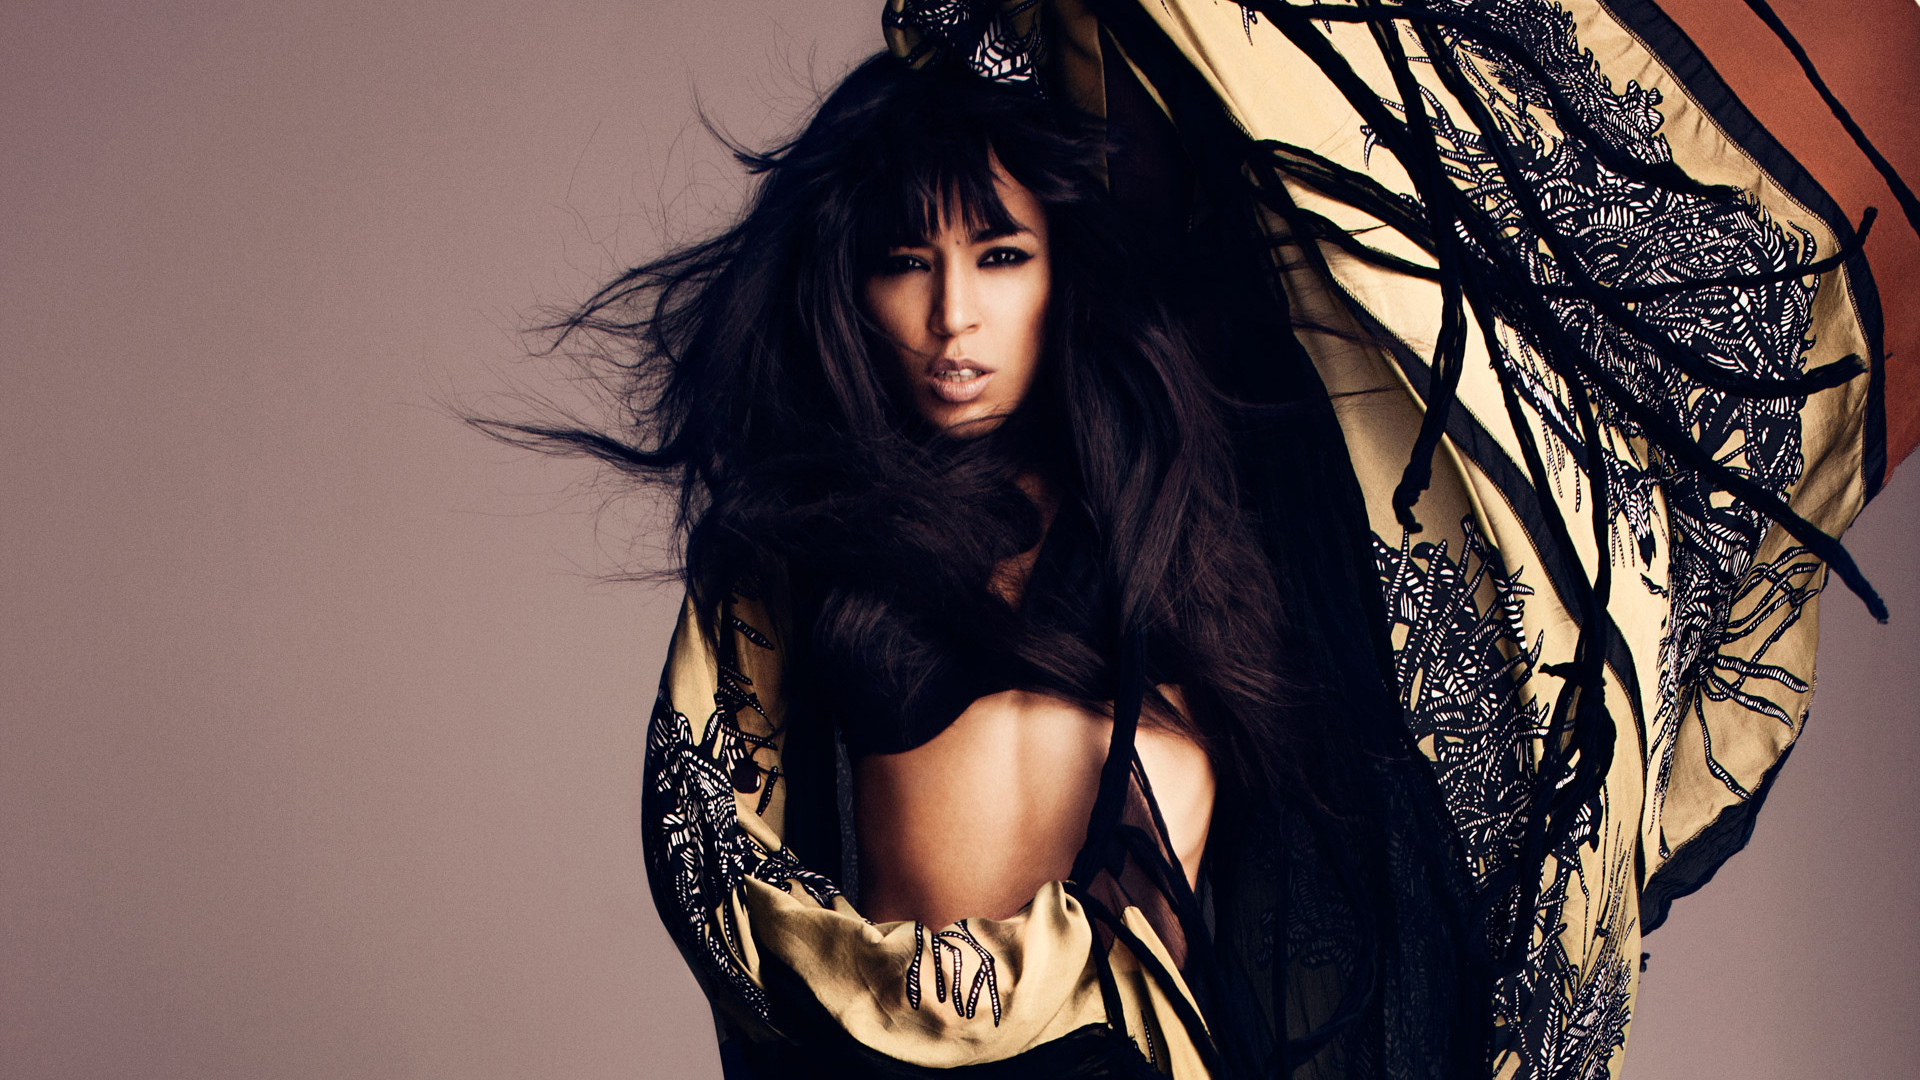 My Heart Is Refusing Me av Loreen